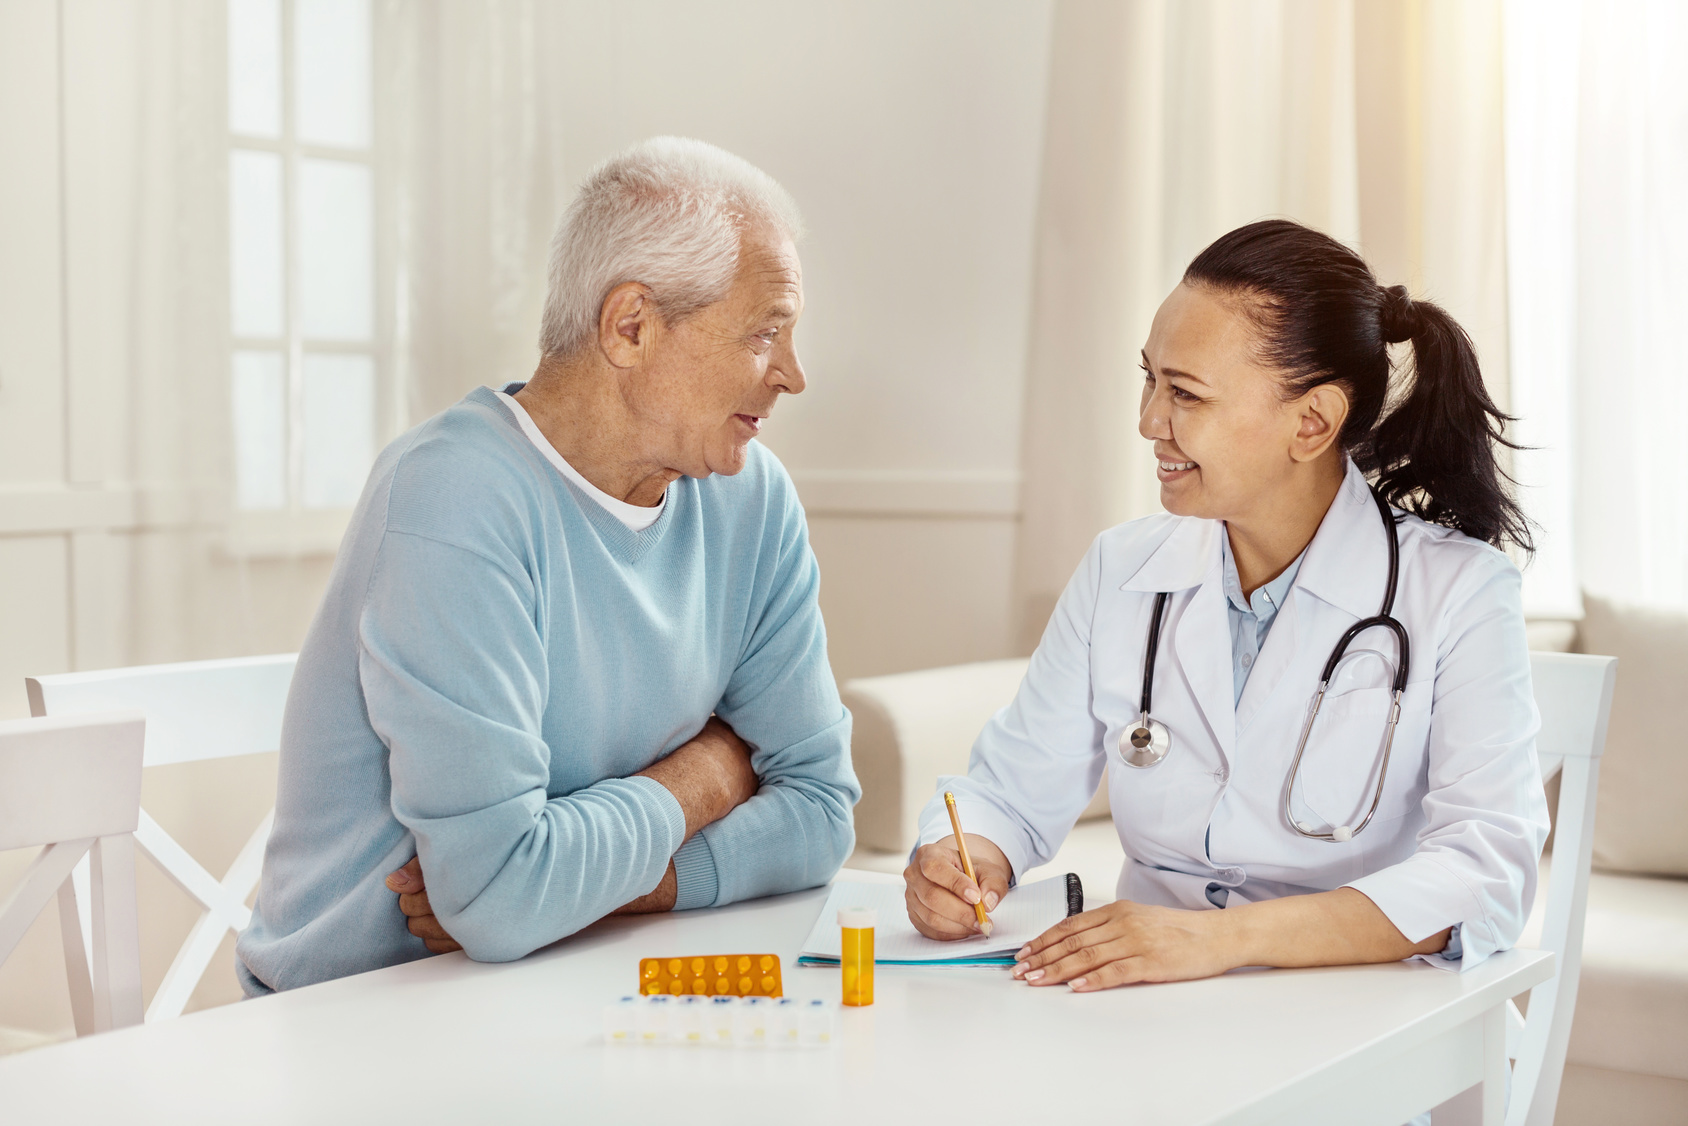 Delighted cheerful doctor sitting together with her patient